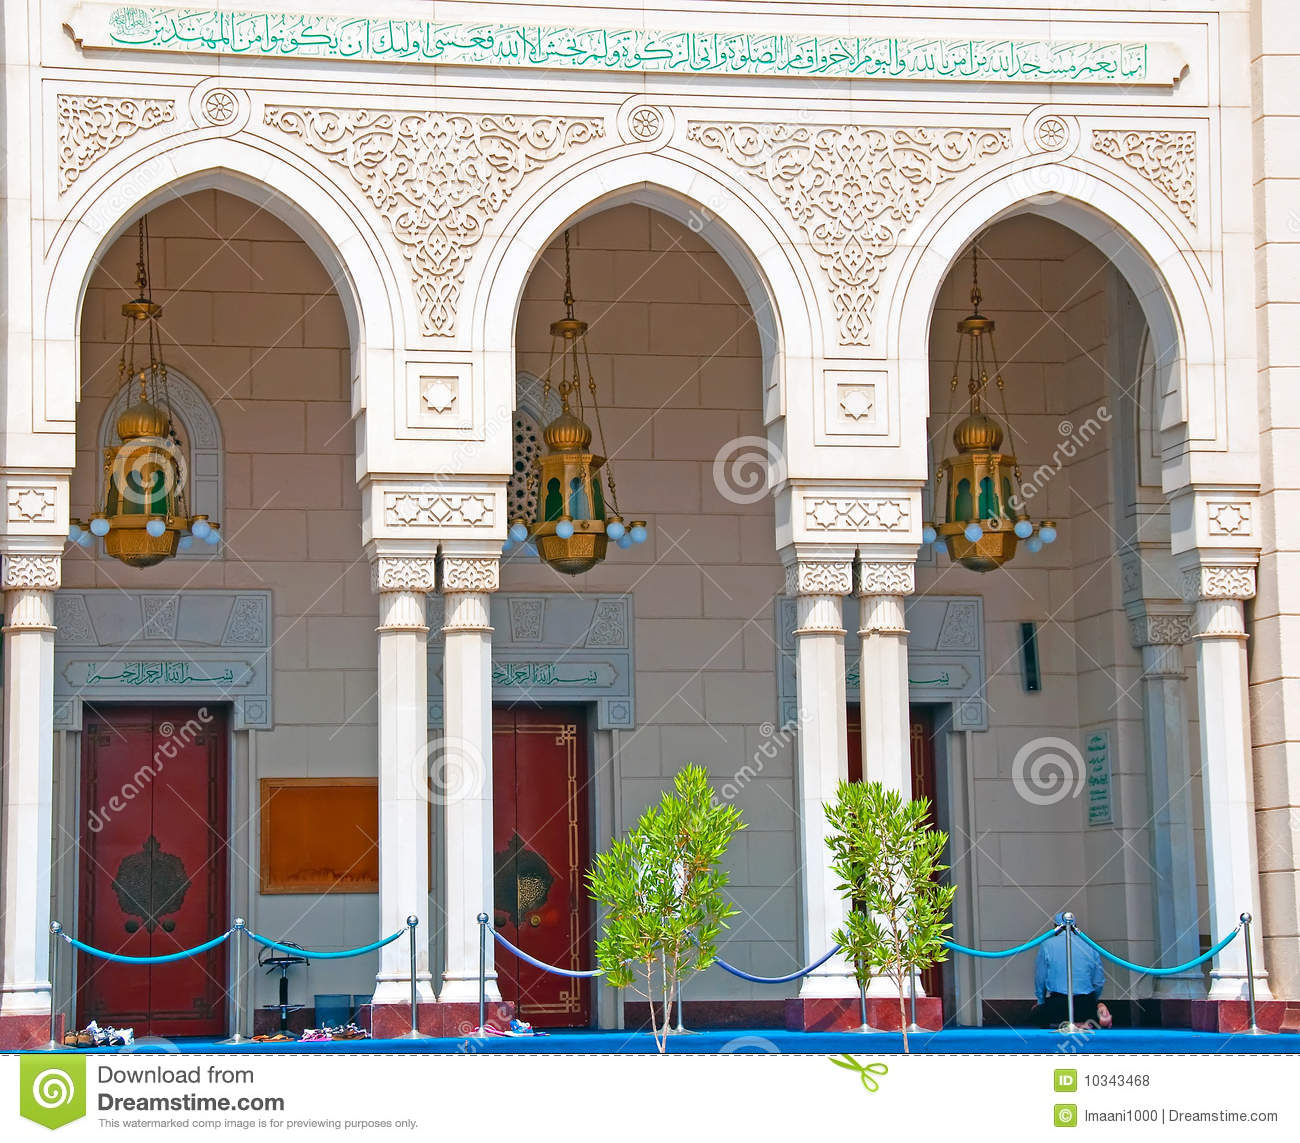 Download Entrance Arches Of A Dubai Mosque Stock Photo - Image of arches, east: 10343468